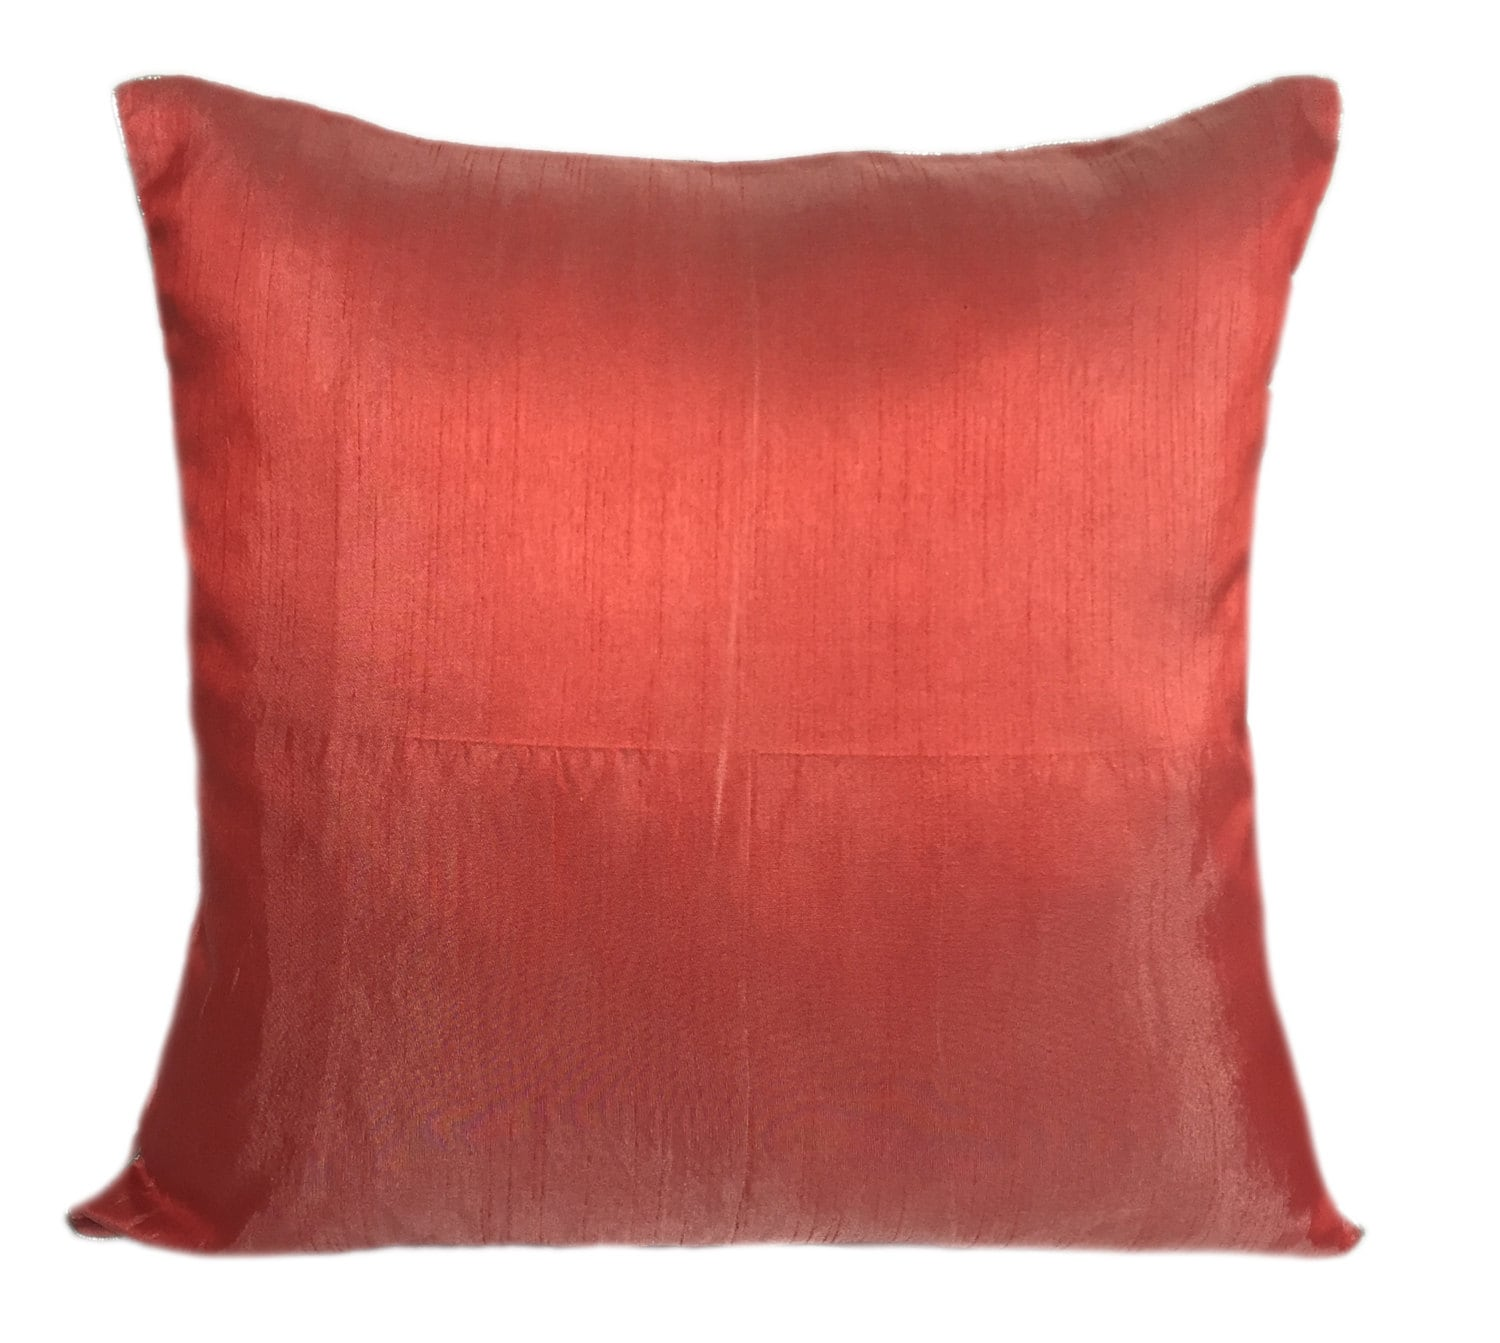 Set Of 2 Solid Poppy Red Pillows Plain Poppy Red Pillow Solid